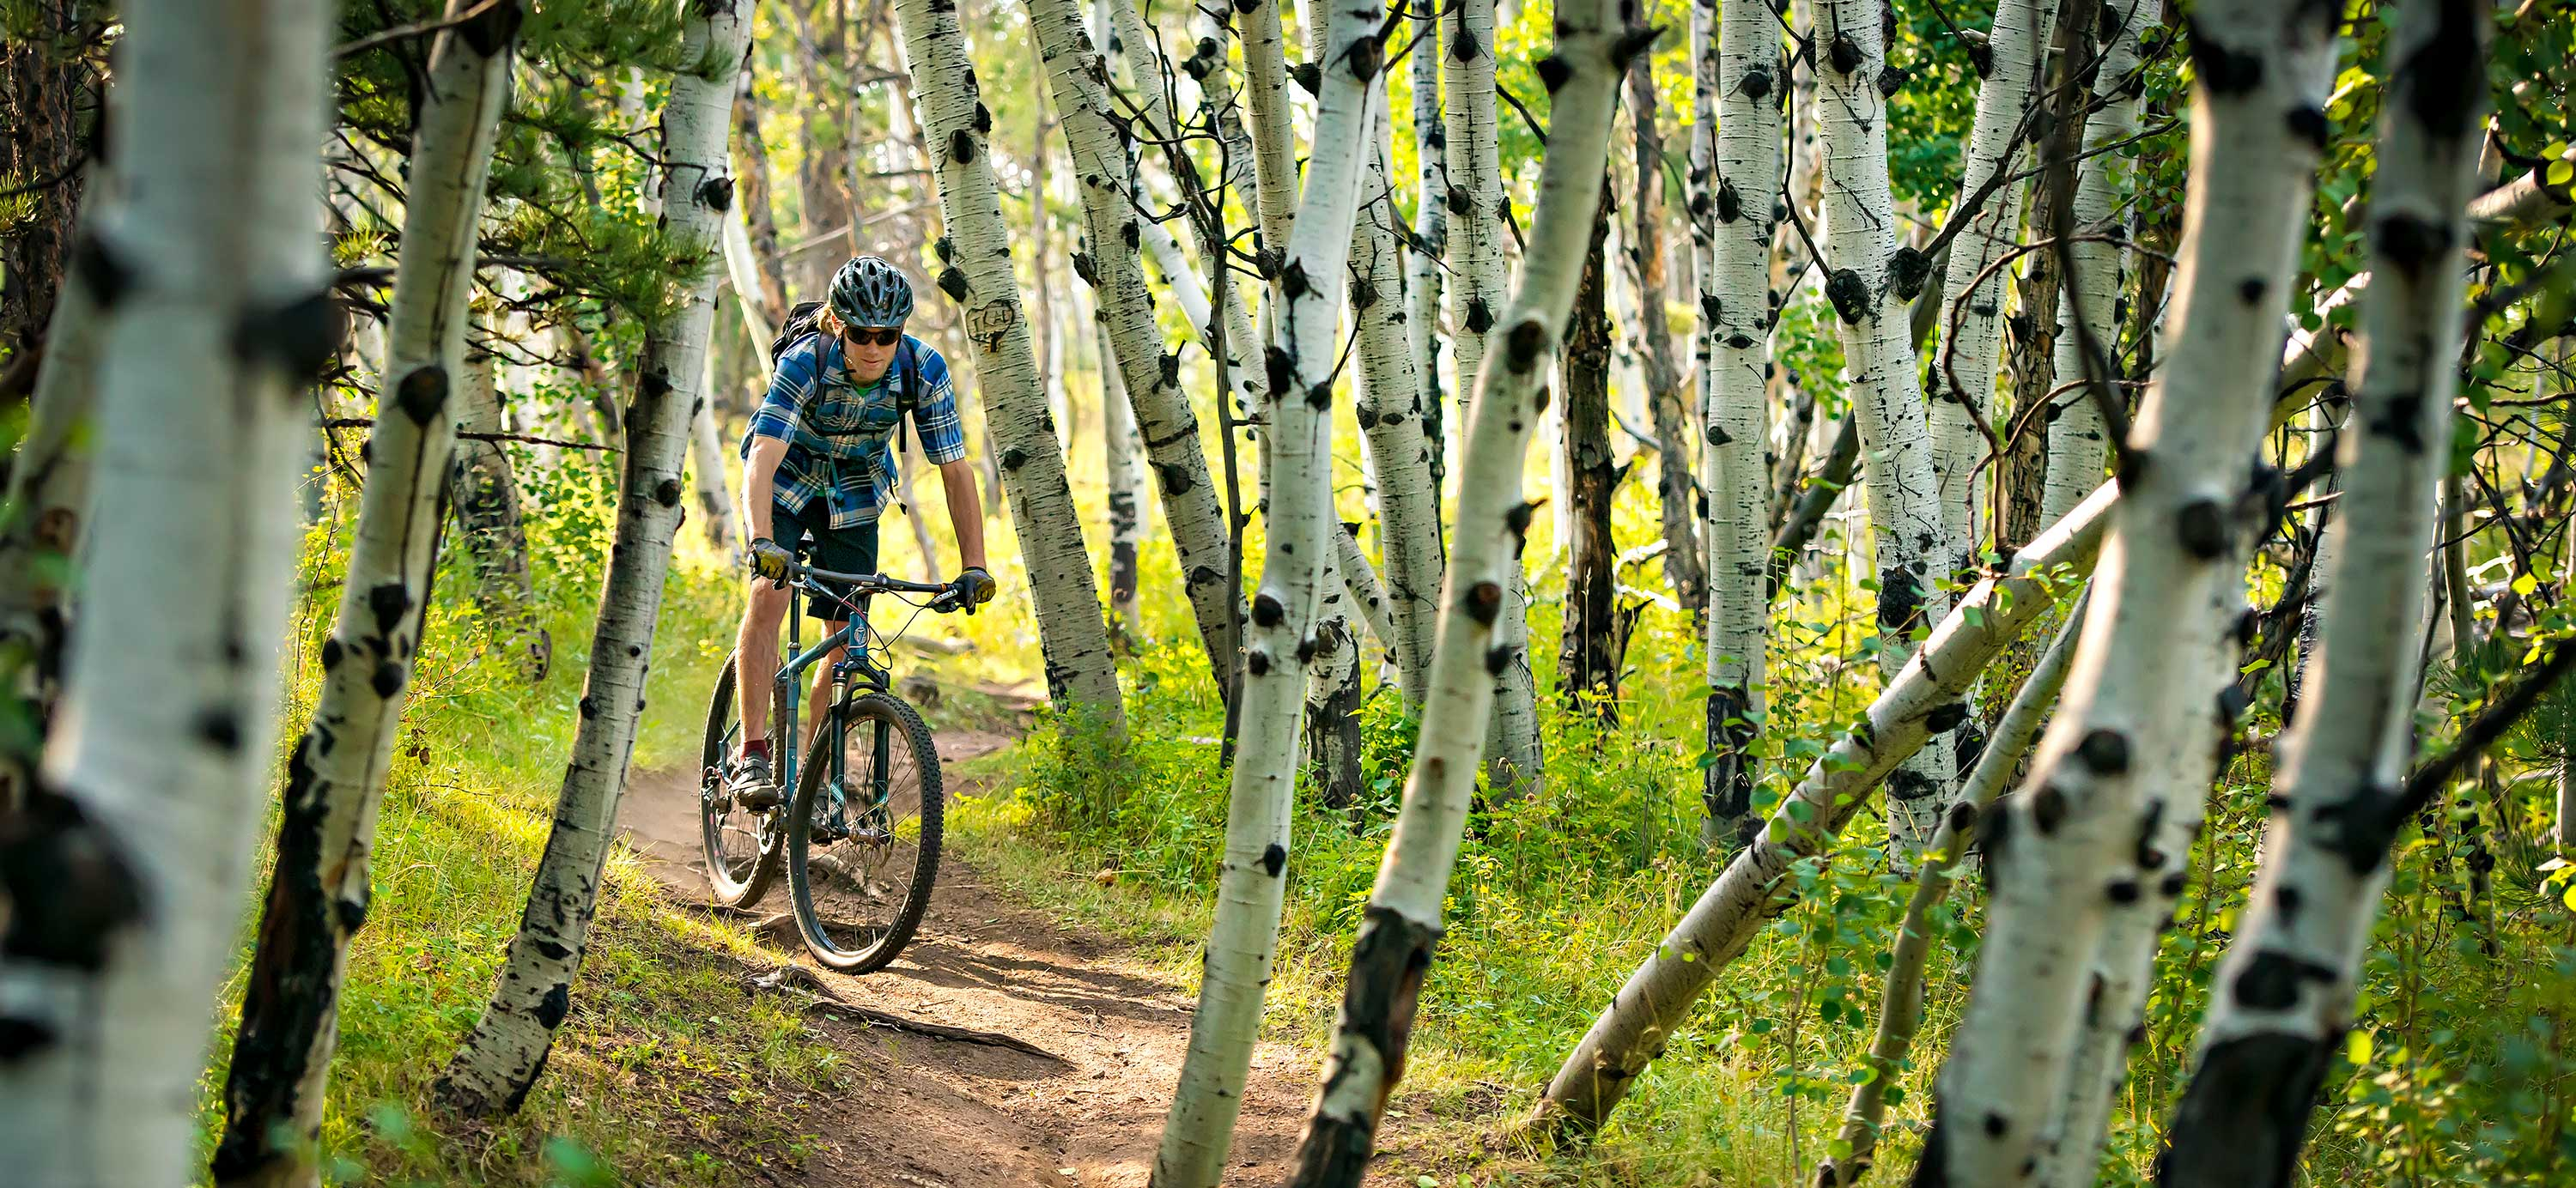 A mountain biker riding through the Medicine Bow Forest